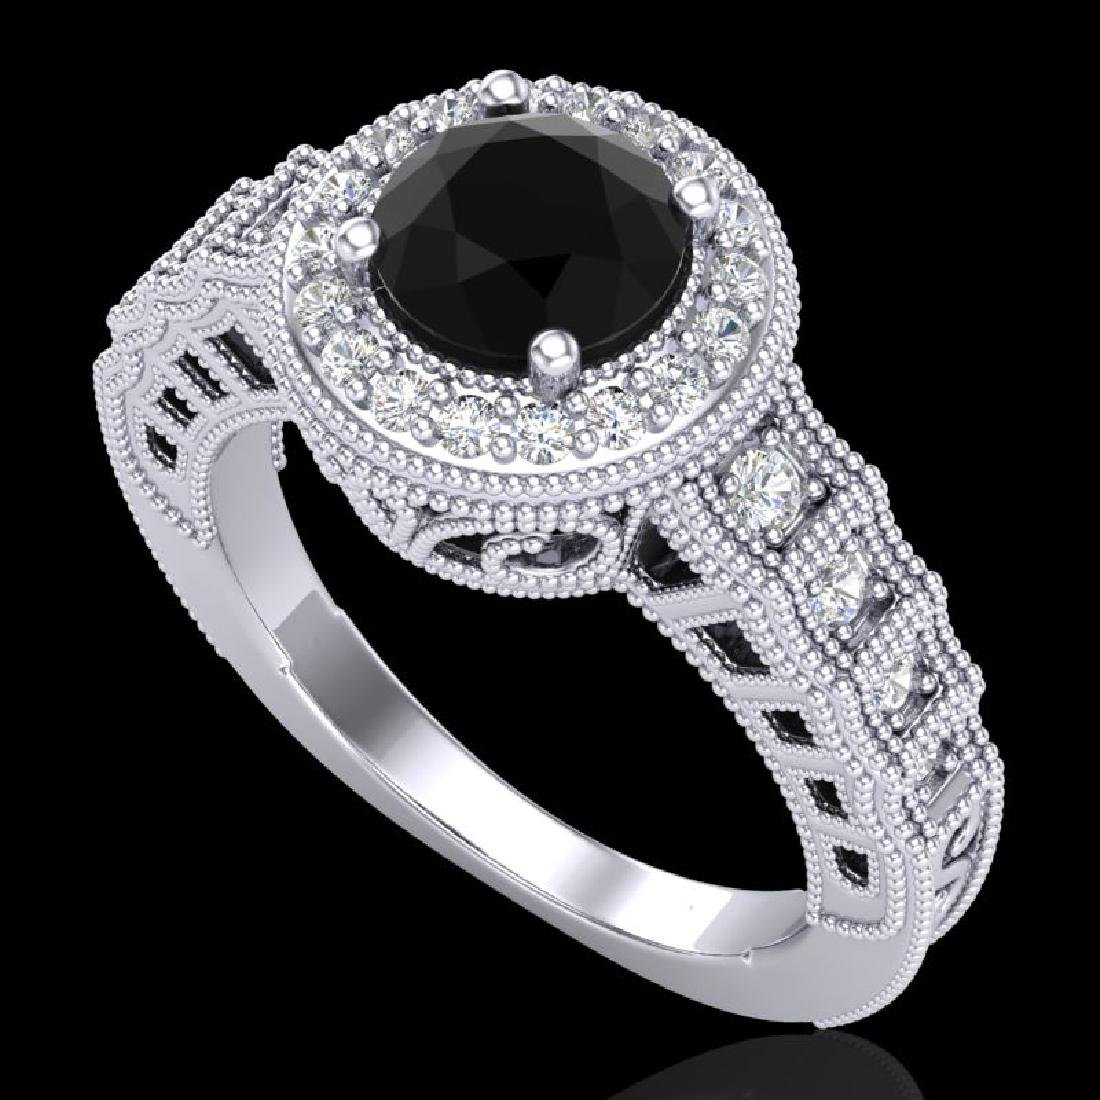 1.53 CTW Fancy Black Diamond Solitaire Engagement Art